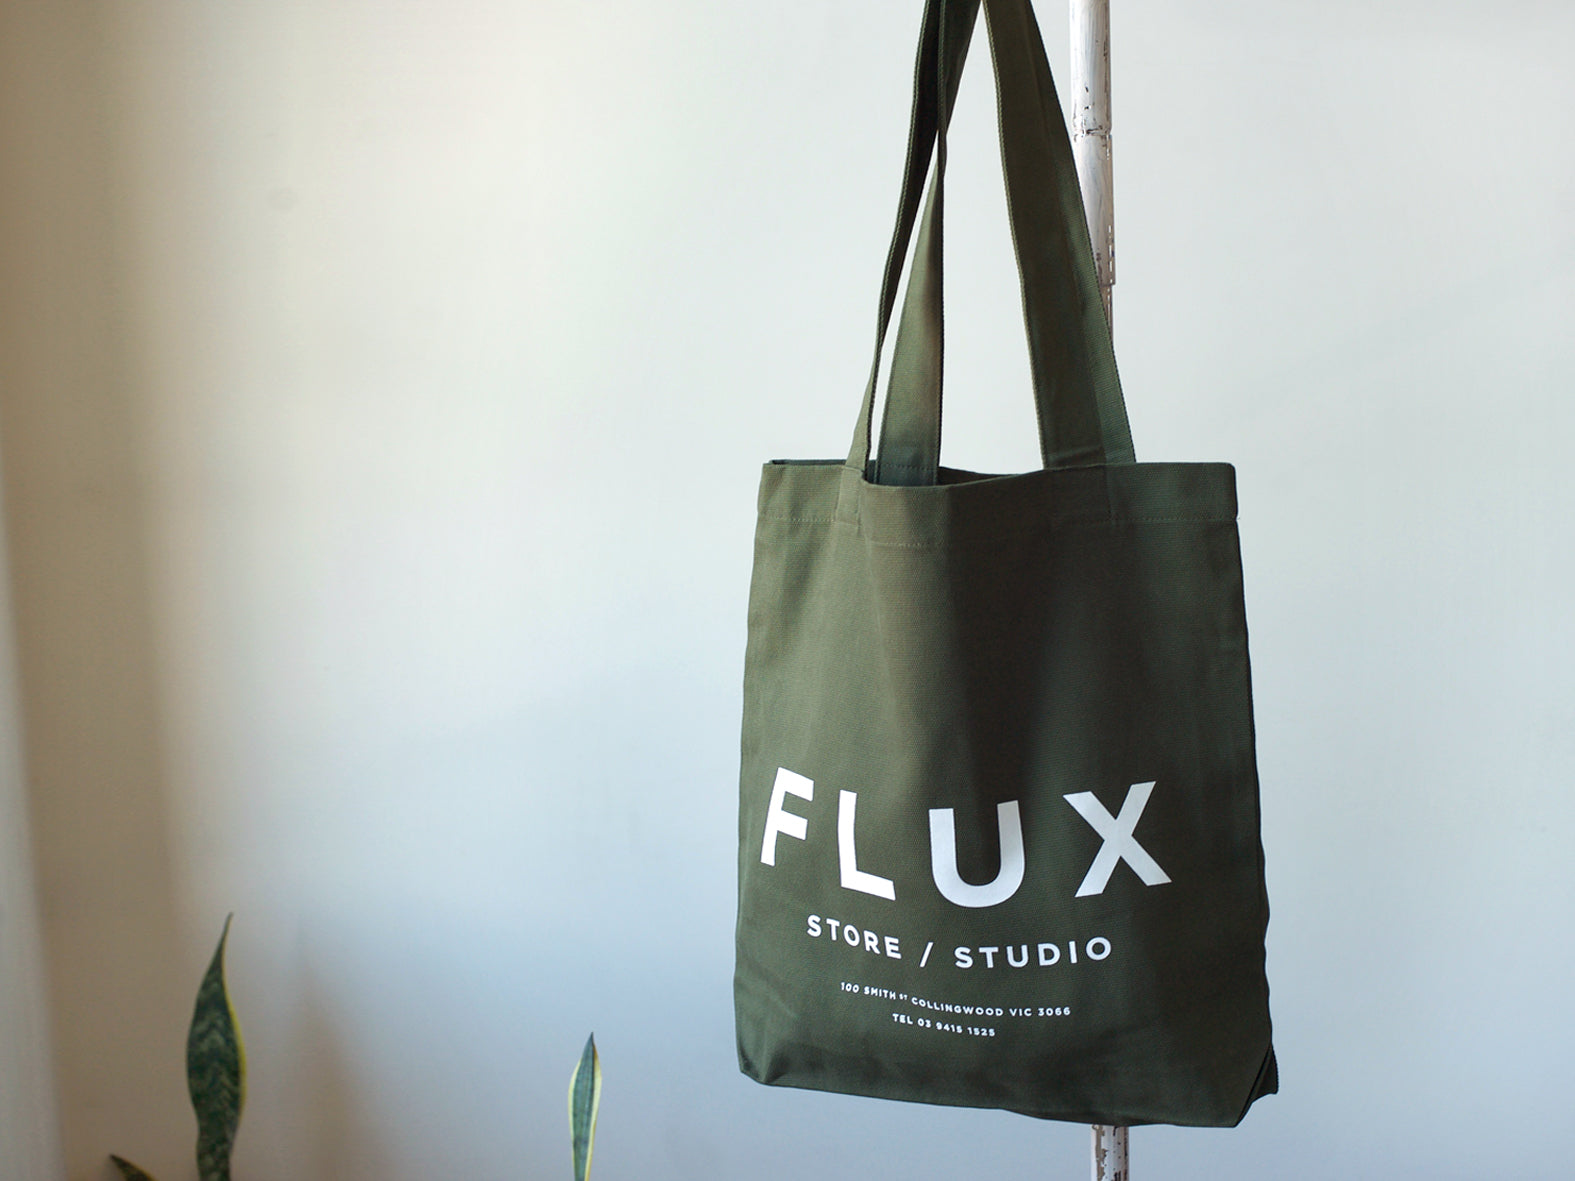 FLUX STORE / STUDIO. CANVAS TOTE. ARMY